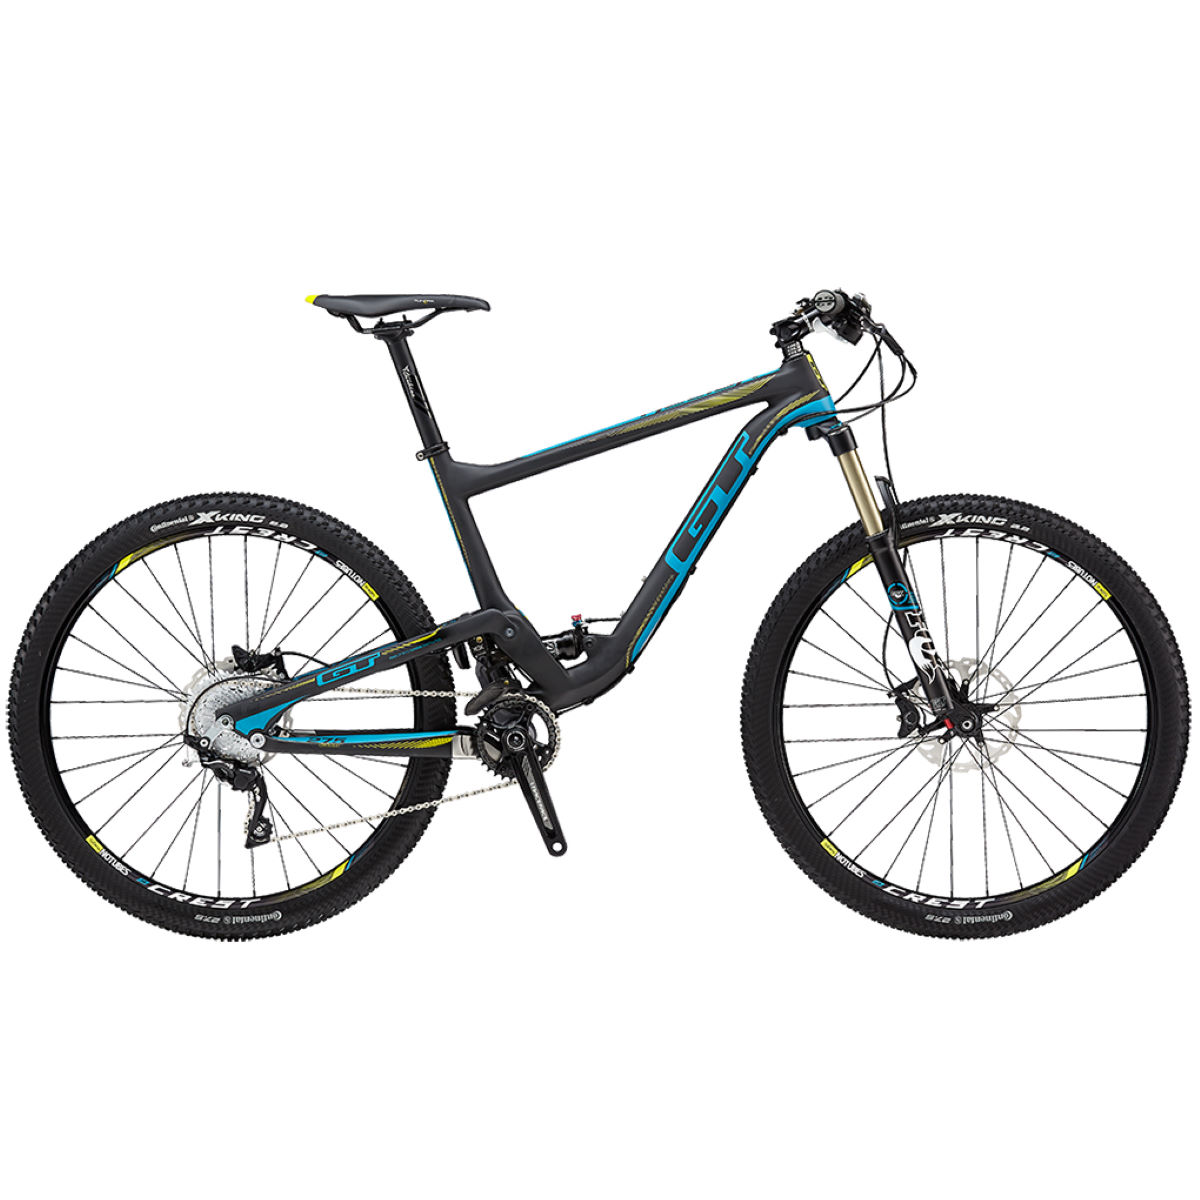 VTT GT Helion Carbone Pro CE (2015) - M Stock Bike Matt Black/Blue VTT tout suspendu